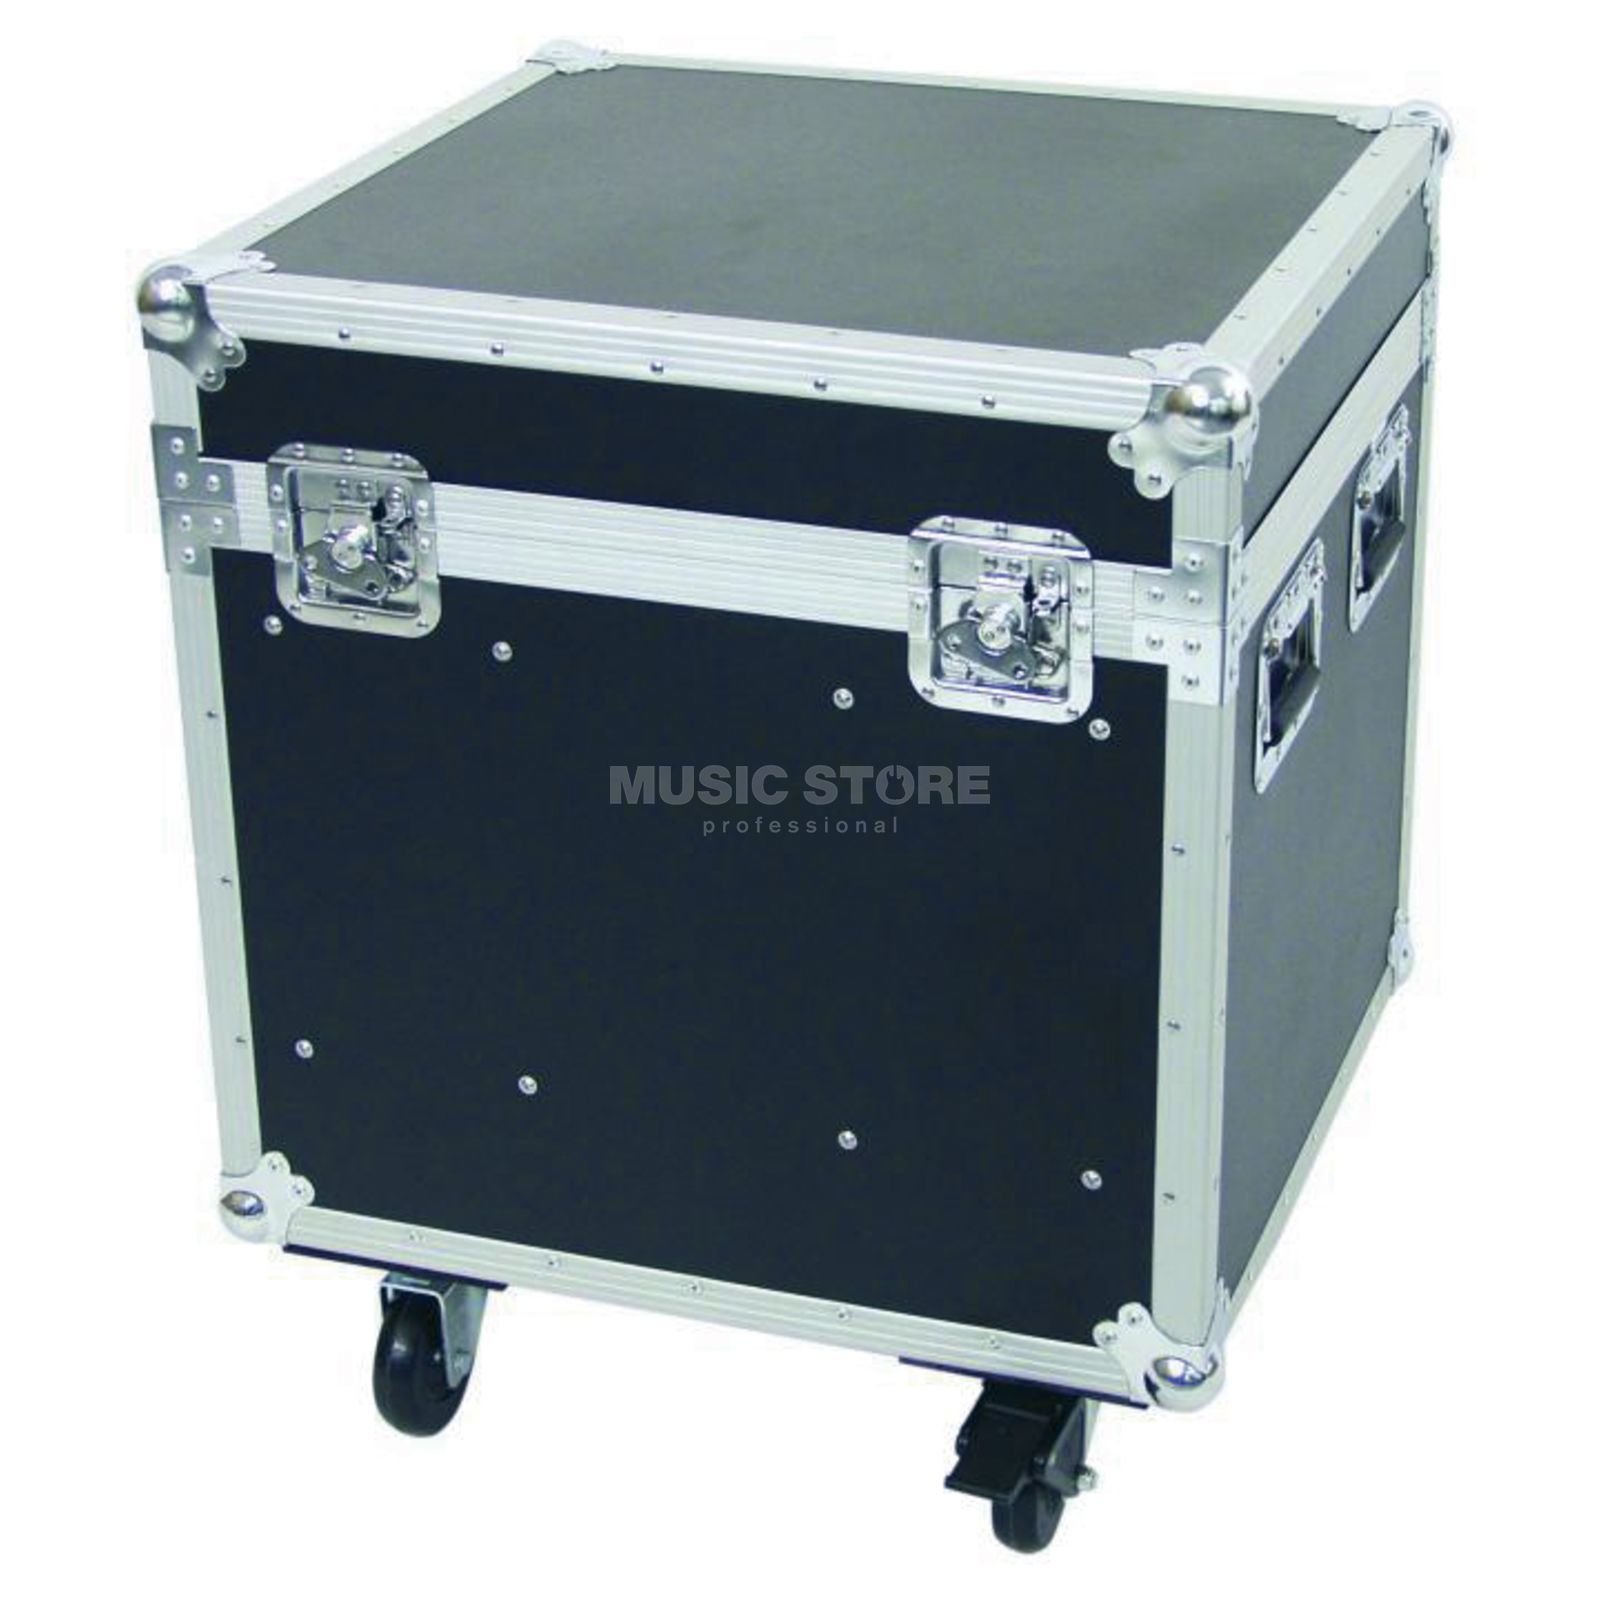 Eurolite Universal Tour Case 60 cm with 4 Casters 100mm Produktbillede